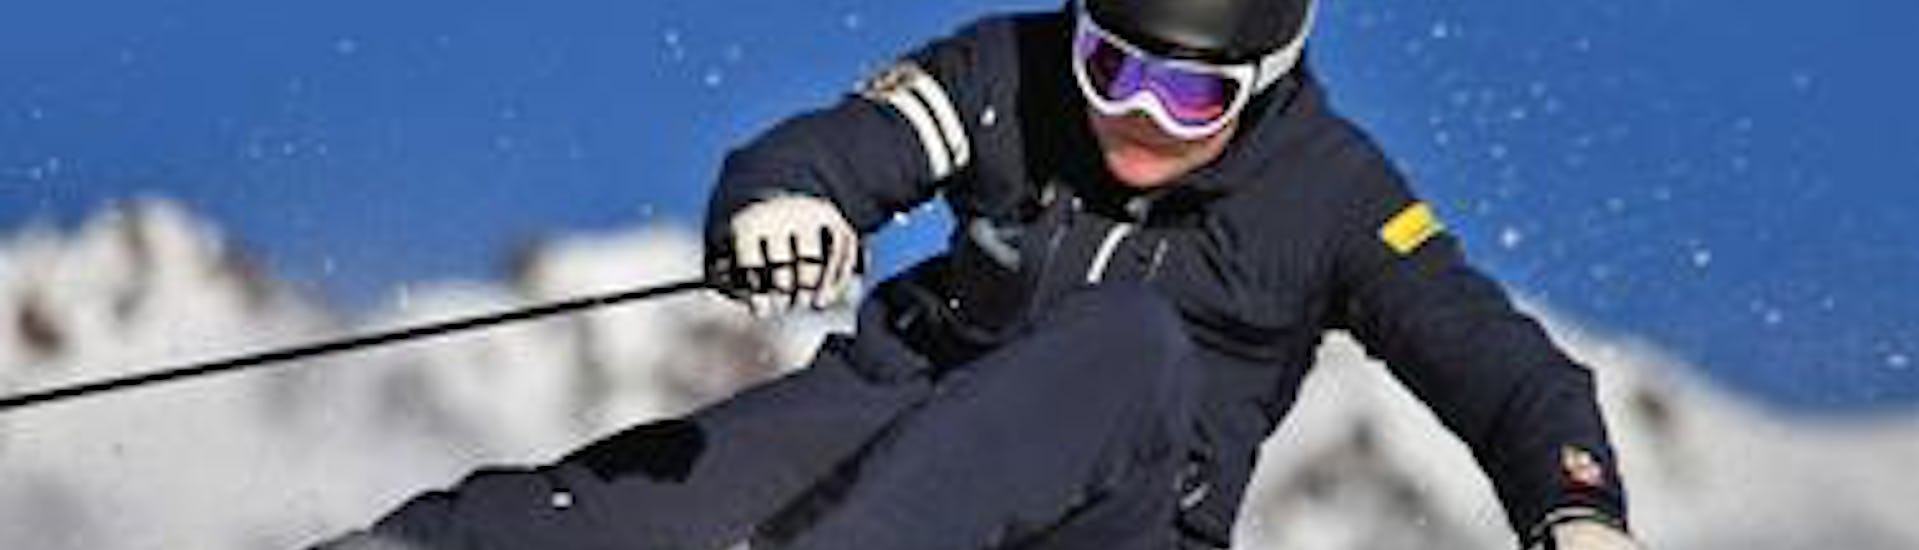 Group Ski Lessons for Adults - All Levels